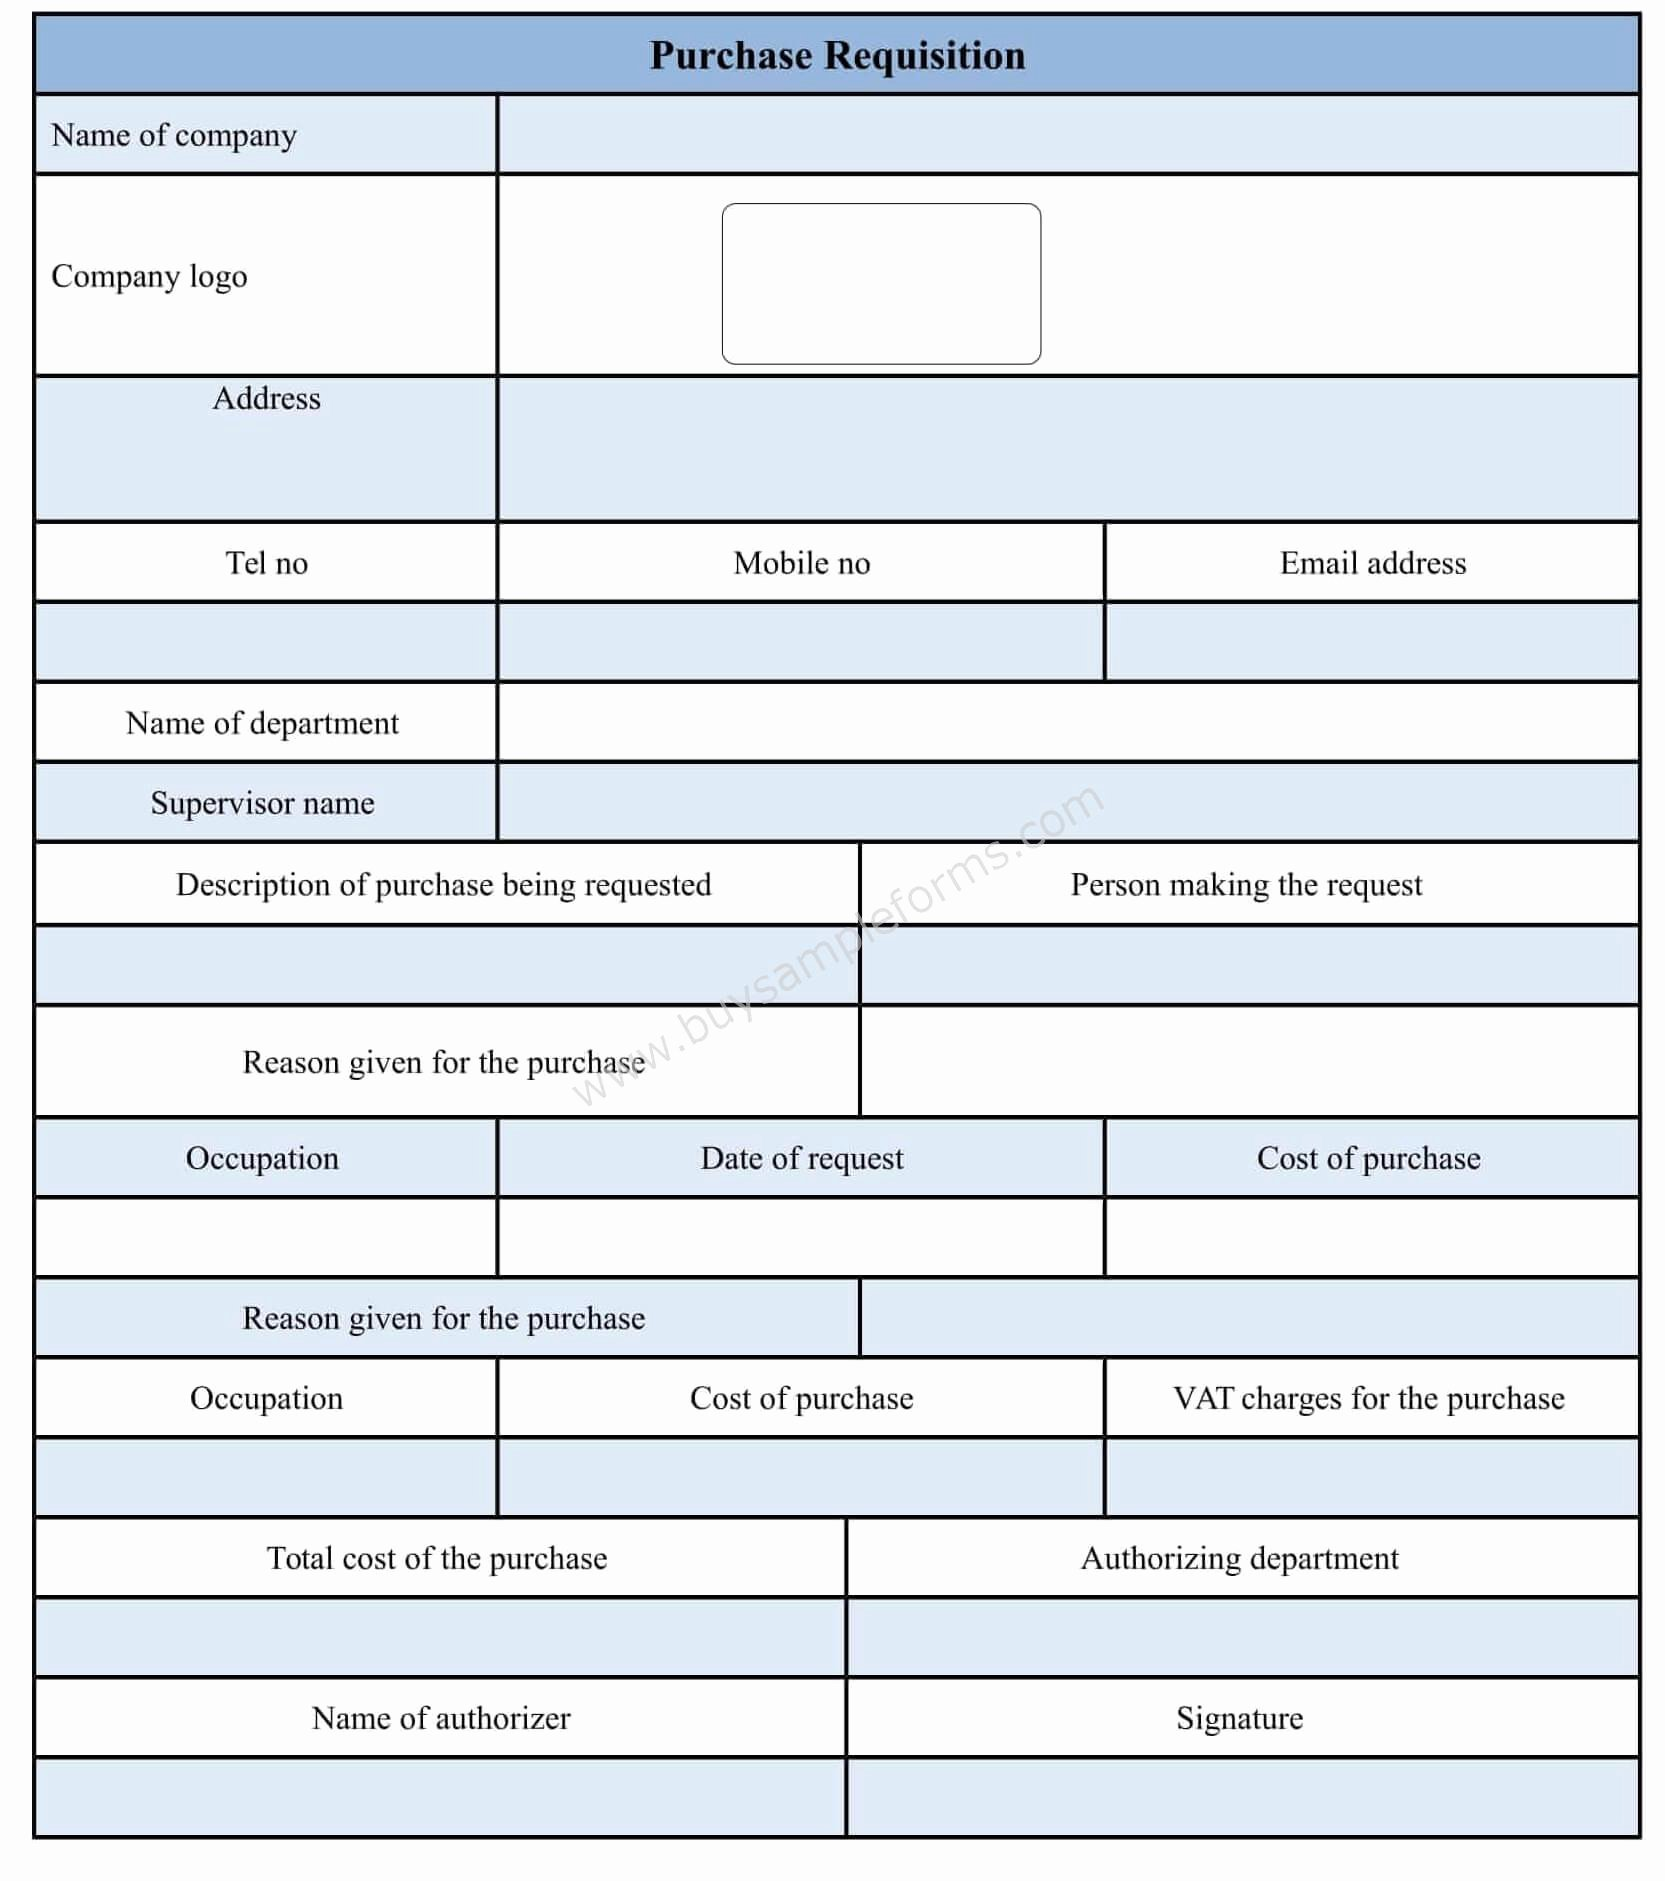 Purchase Requisition forms Template Inspirational Purchase Requisition form Template Doc